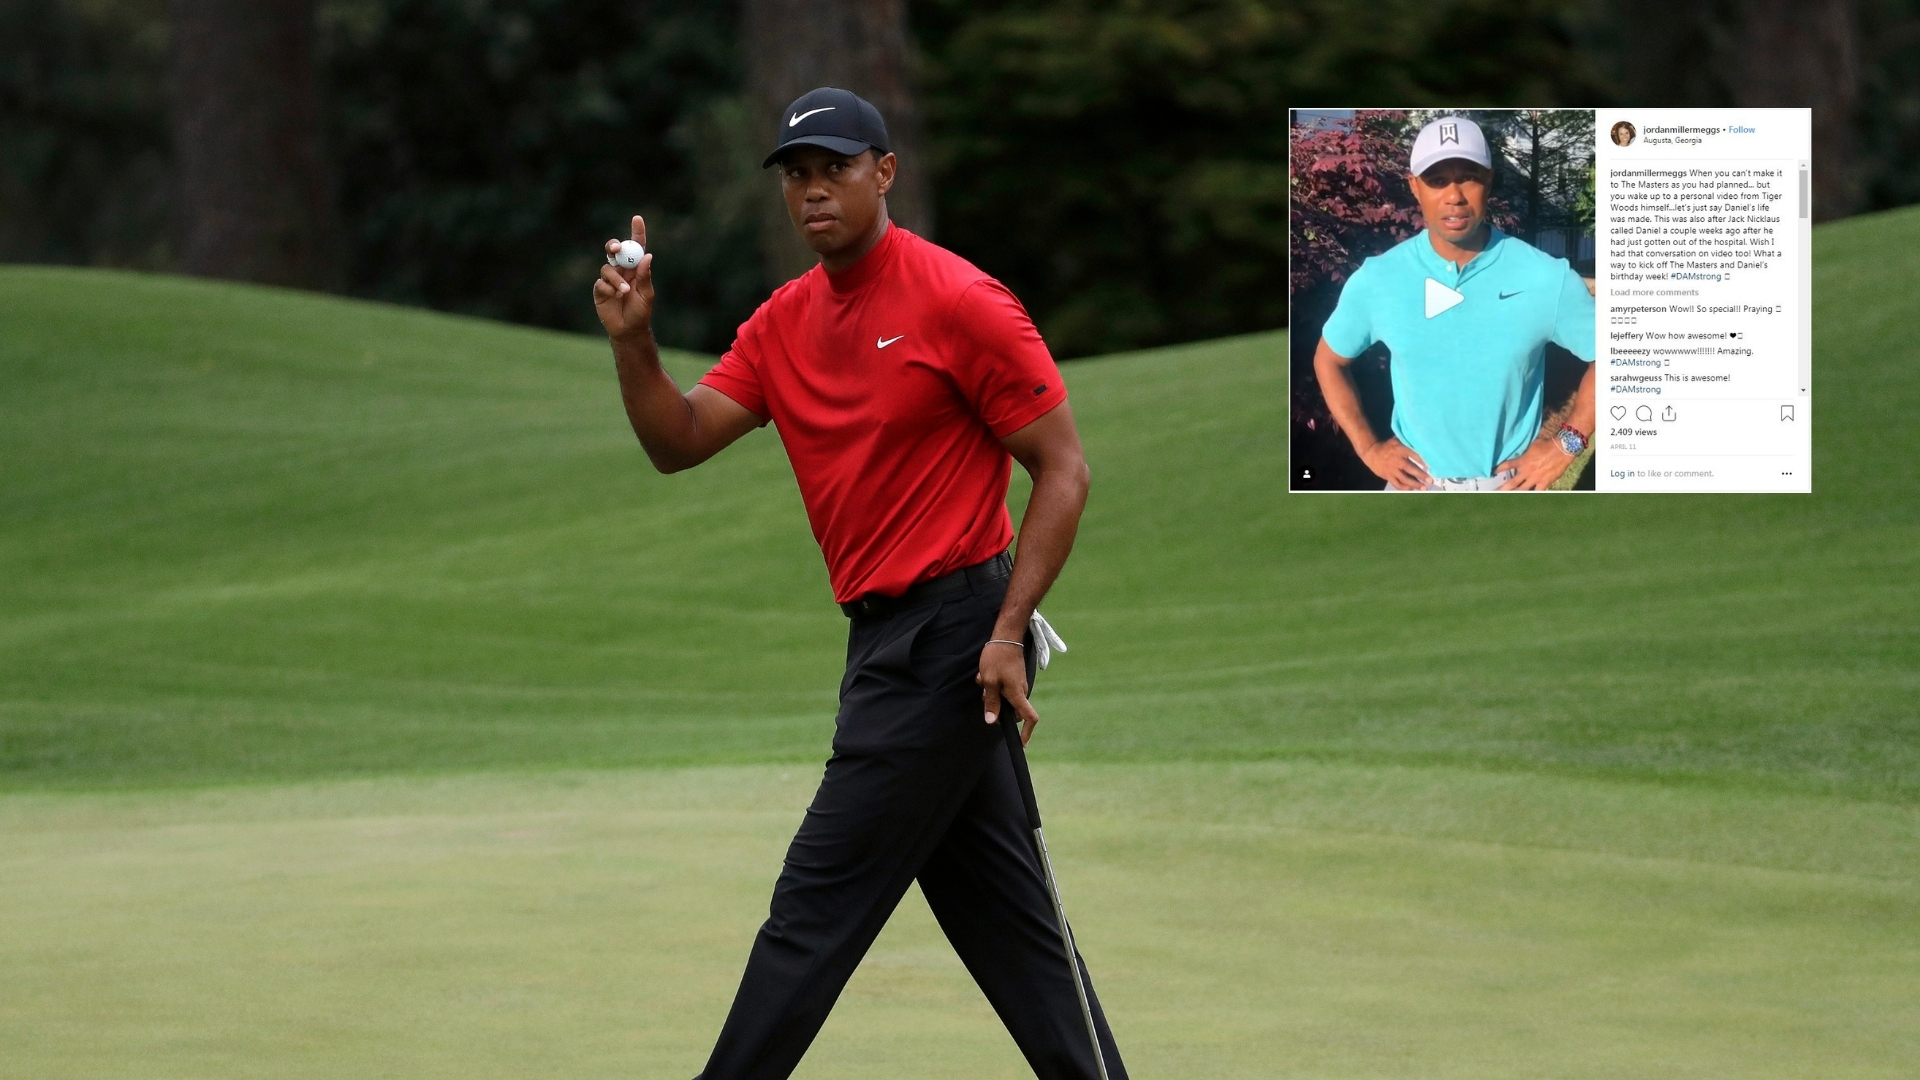 Stay Strong & Keep Fighting: Woods' Video for Cancer-Affected Fan